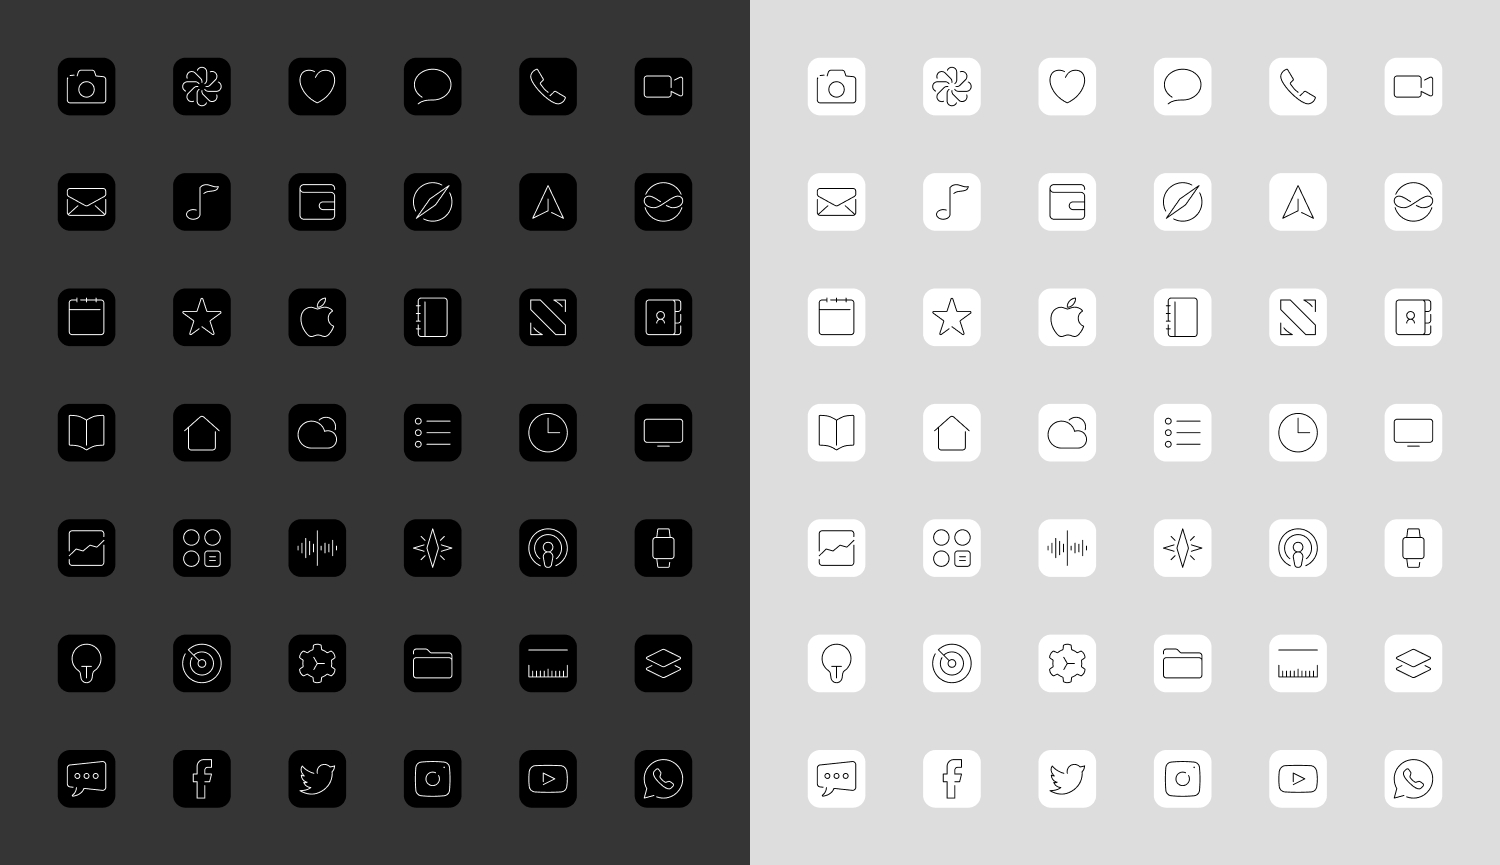 42 custom iOS icons in black and white.